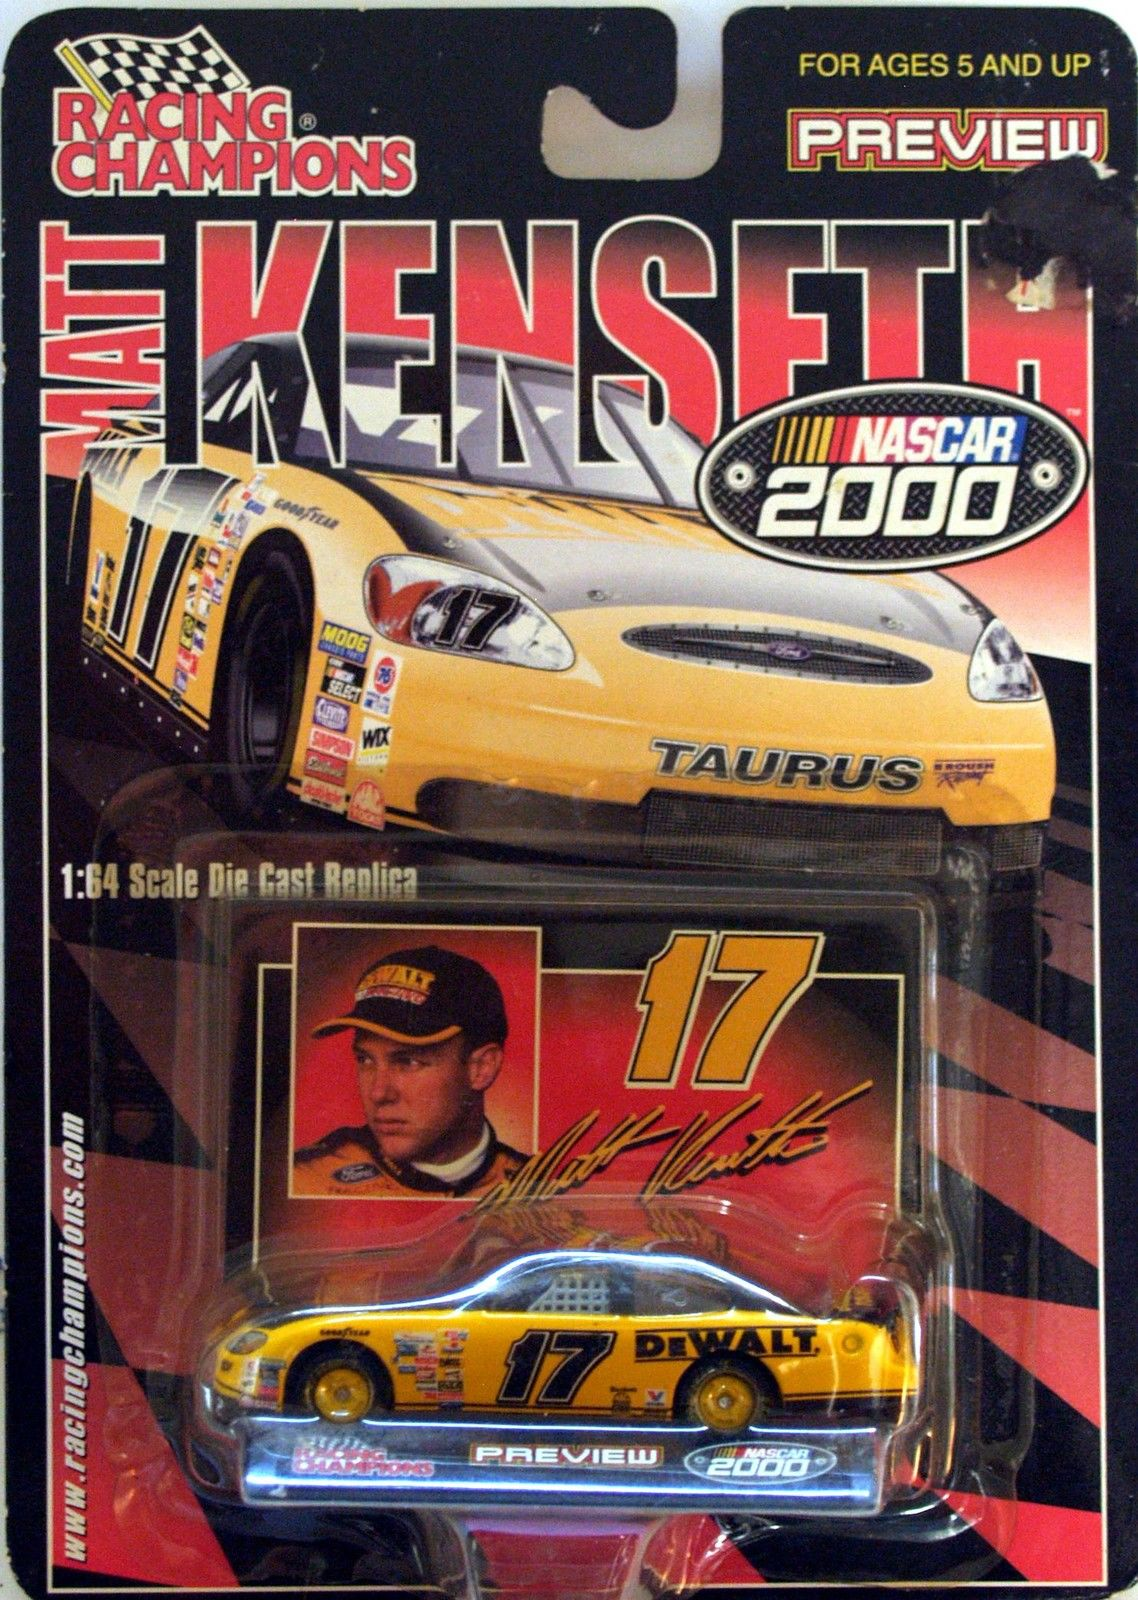 2000 RACING CHAMPIONS NASCAR - PREVIEW SERIES - #17 MATT KENSETH